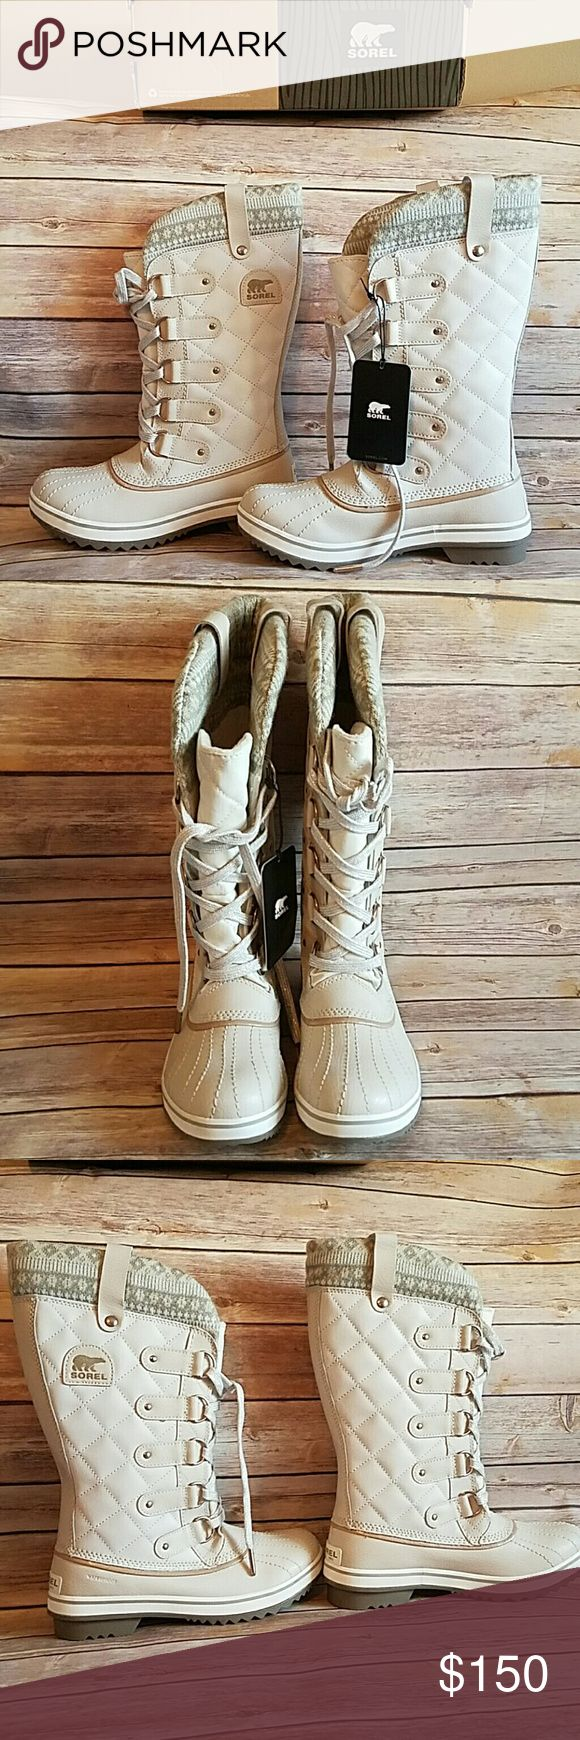 NWT SOREL Joan of Arctic Knit Duck Boots New with tags. SOREL Joan of Arctic Knit Duck Boots in Fawn, Cream White.    Size 7 Sorel Shoes Winter & Rain Boots